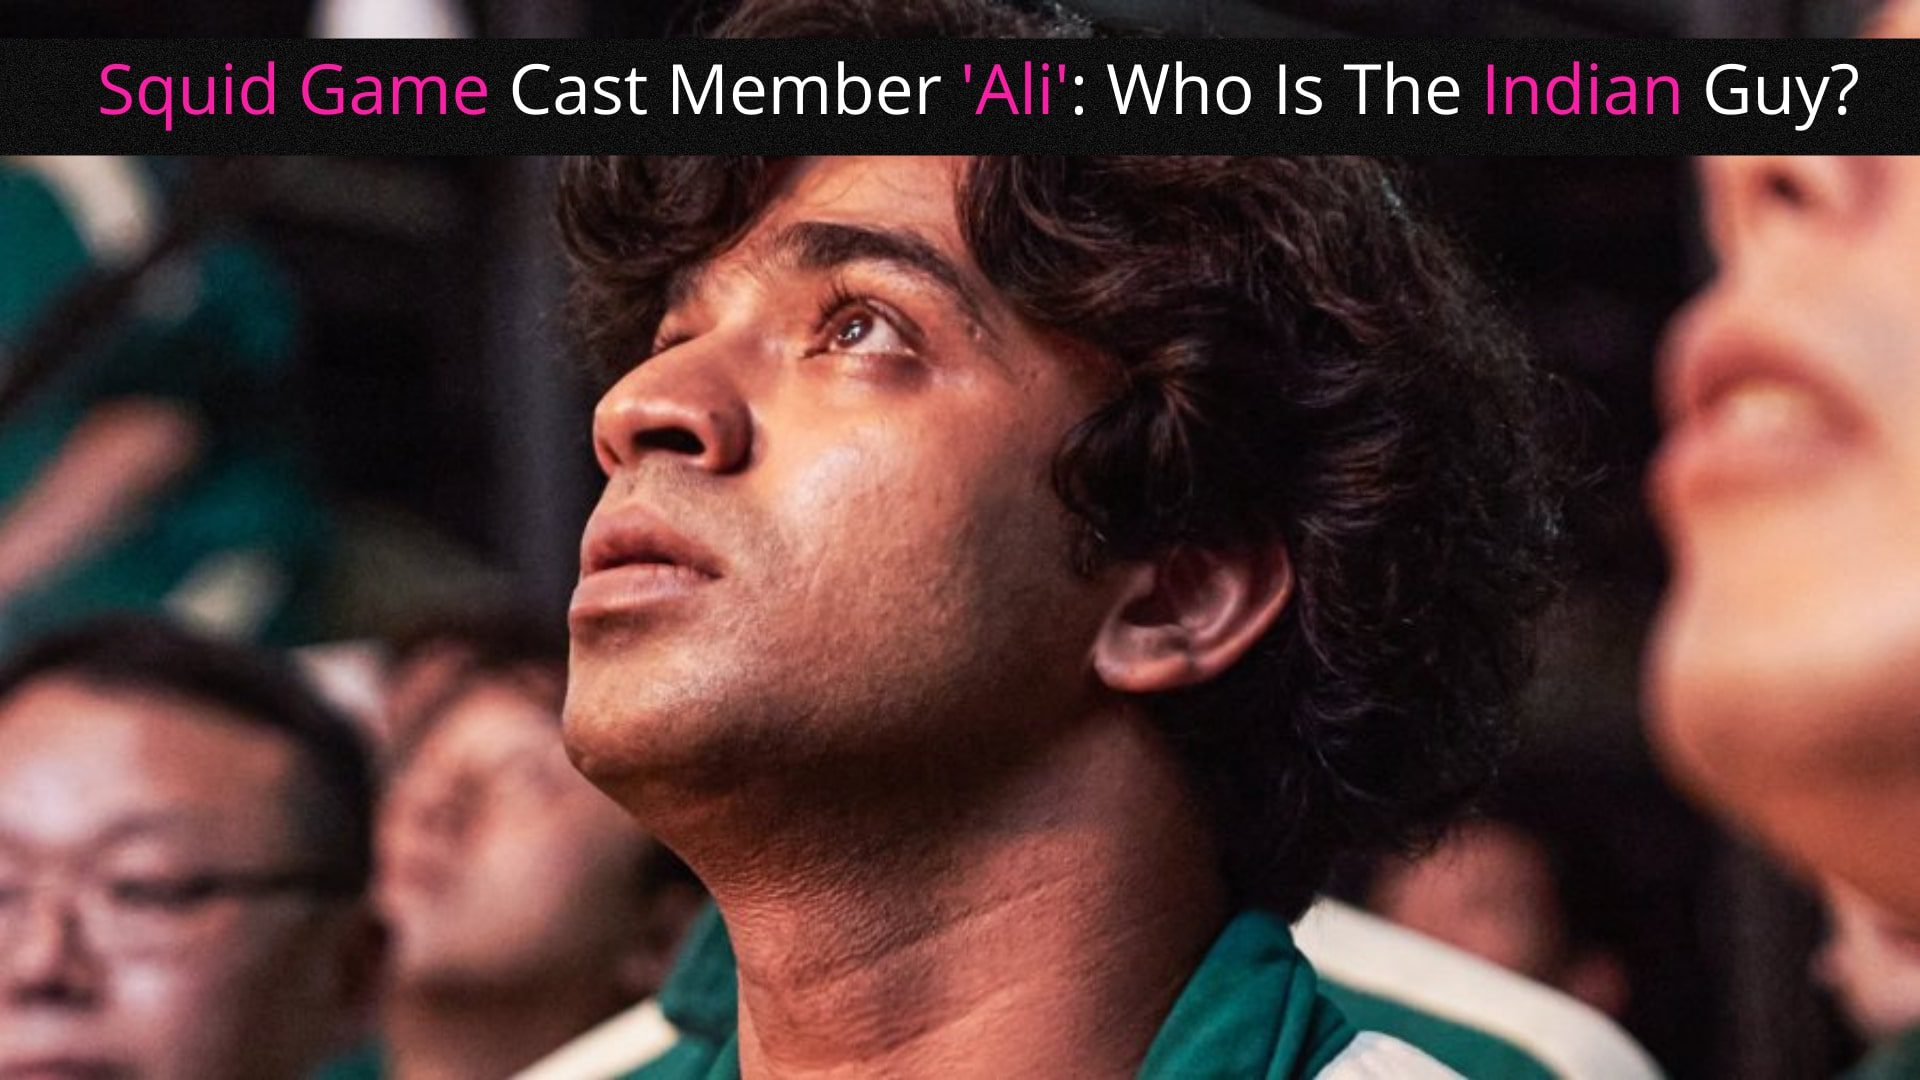 Squid Game Cast Member Ali: Who Is The Indian Guy?